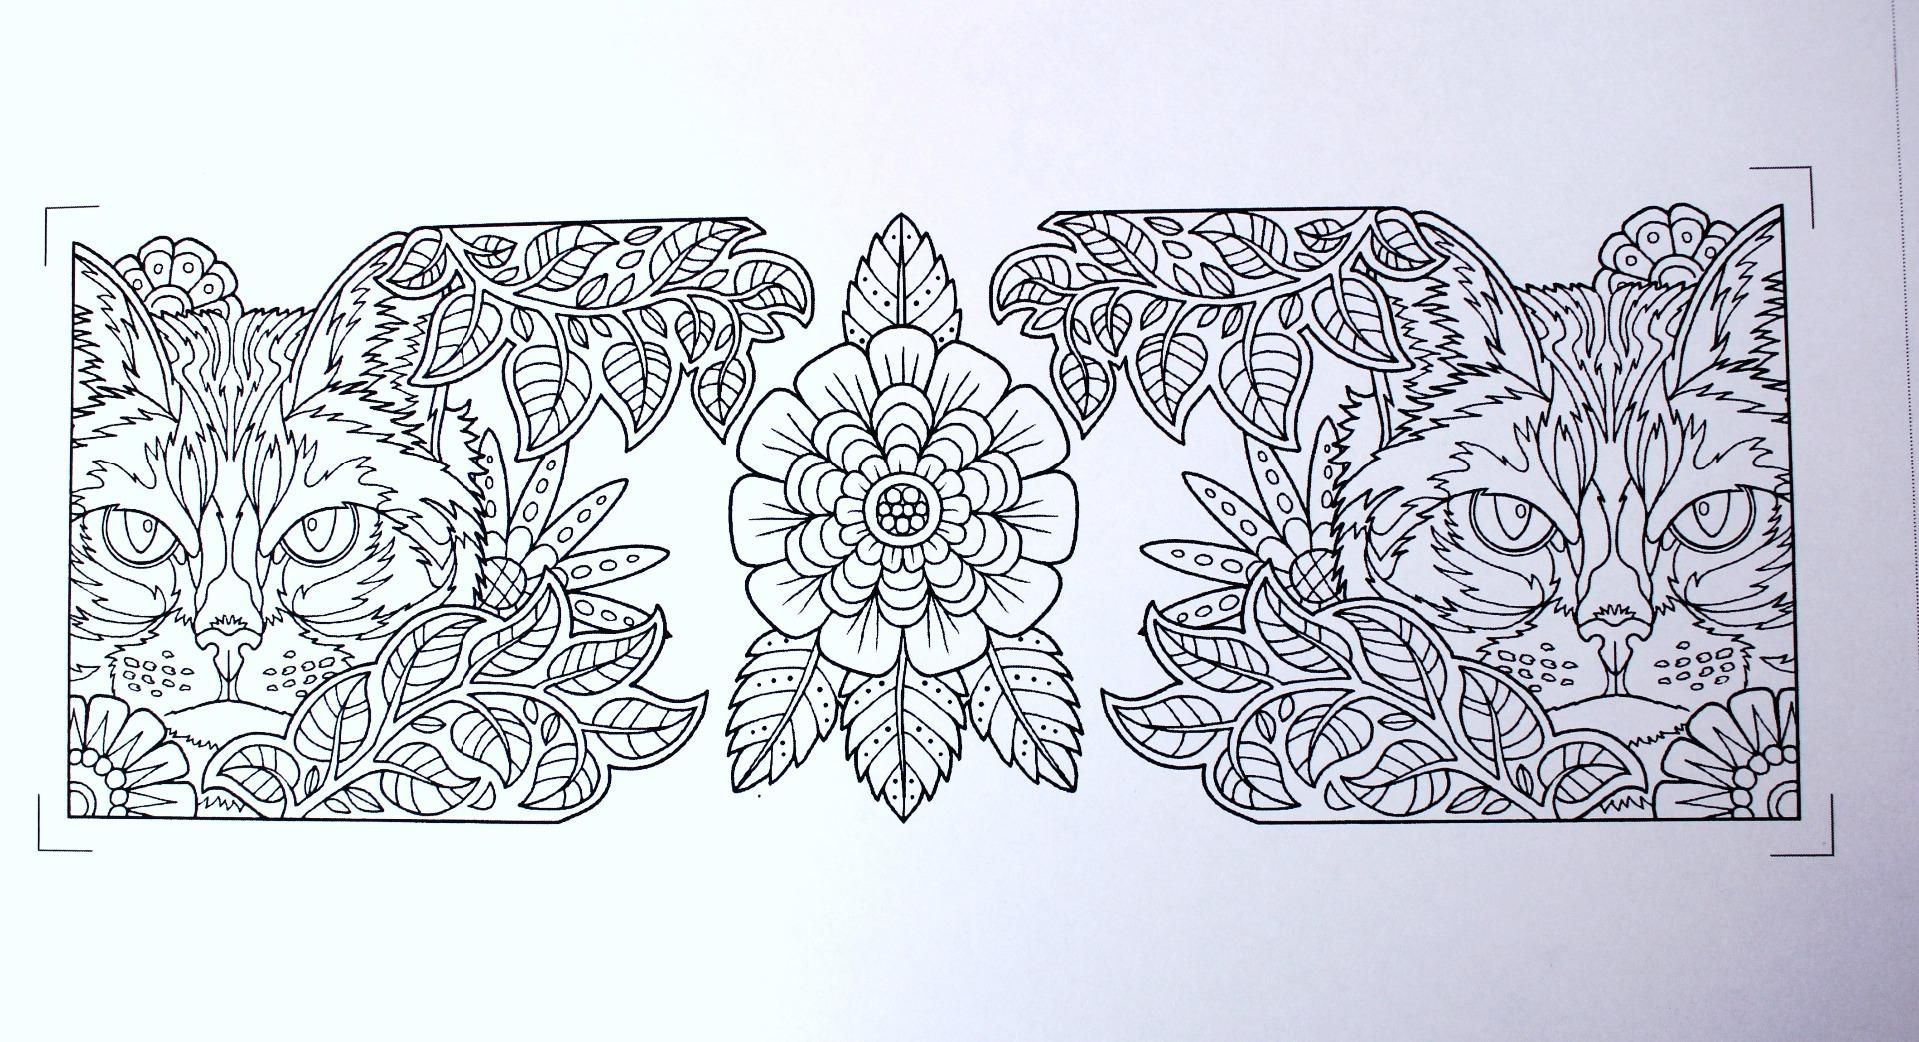 Amazon Garden Paths Coloring Book Inc and Kathryn Marlin